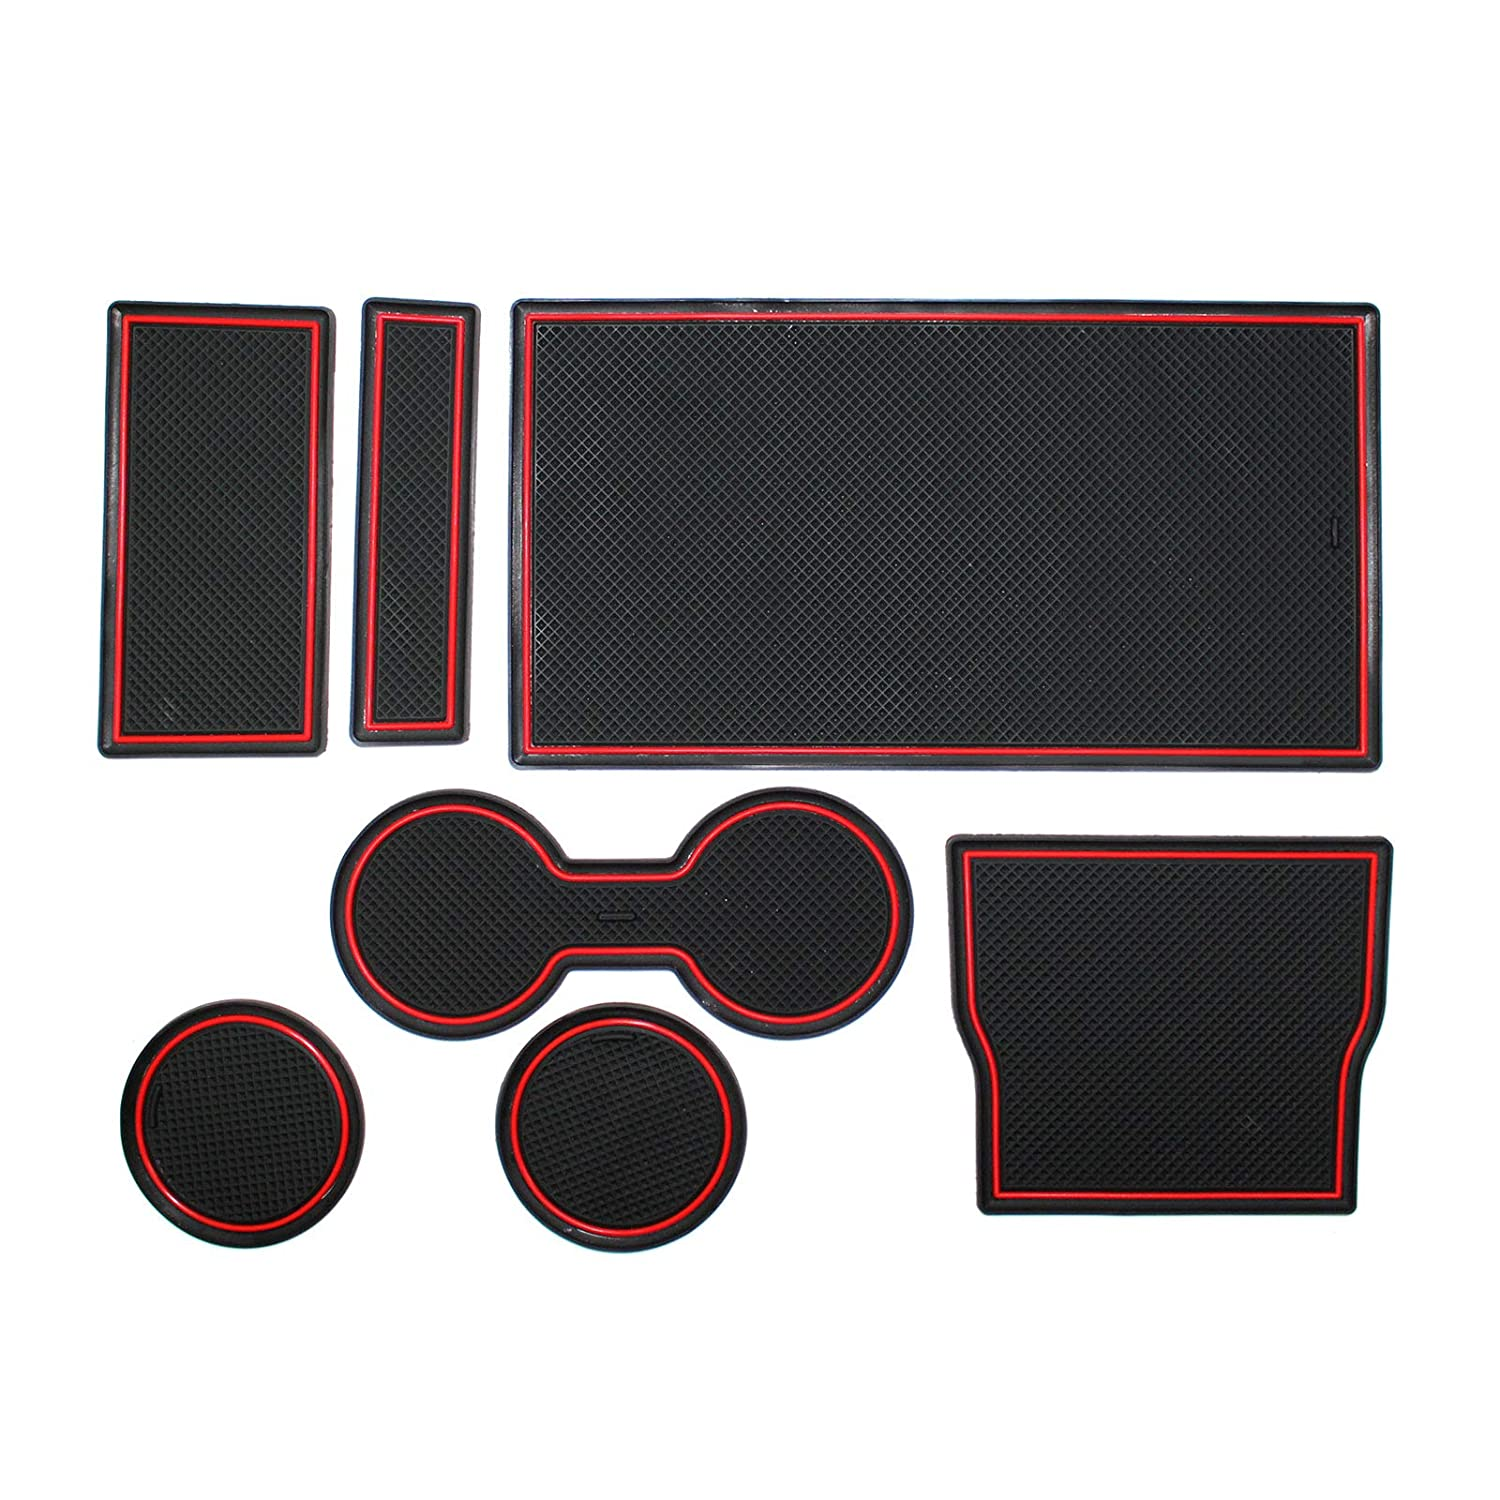 YaaGoo 7pcs Cup and Center Console Liner Set Red Trim for Tesla Model 3 2017 2018 2019 Red